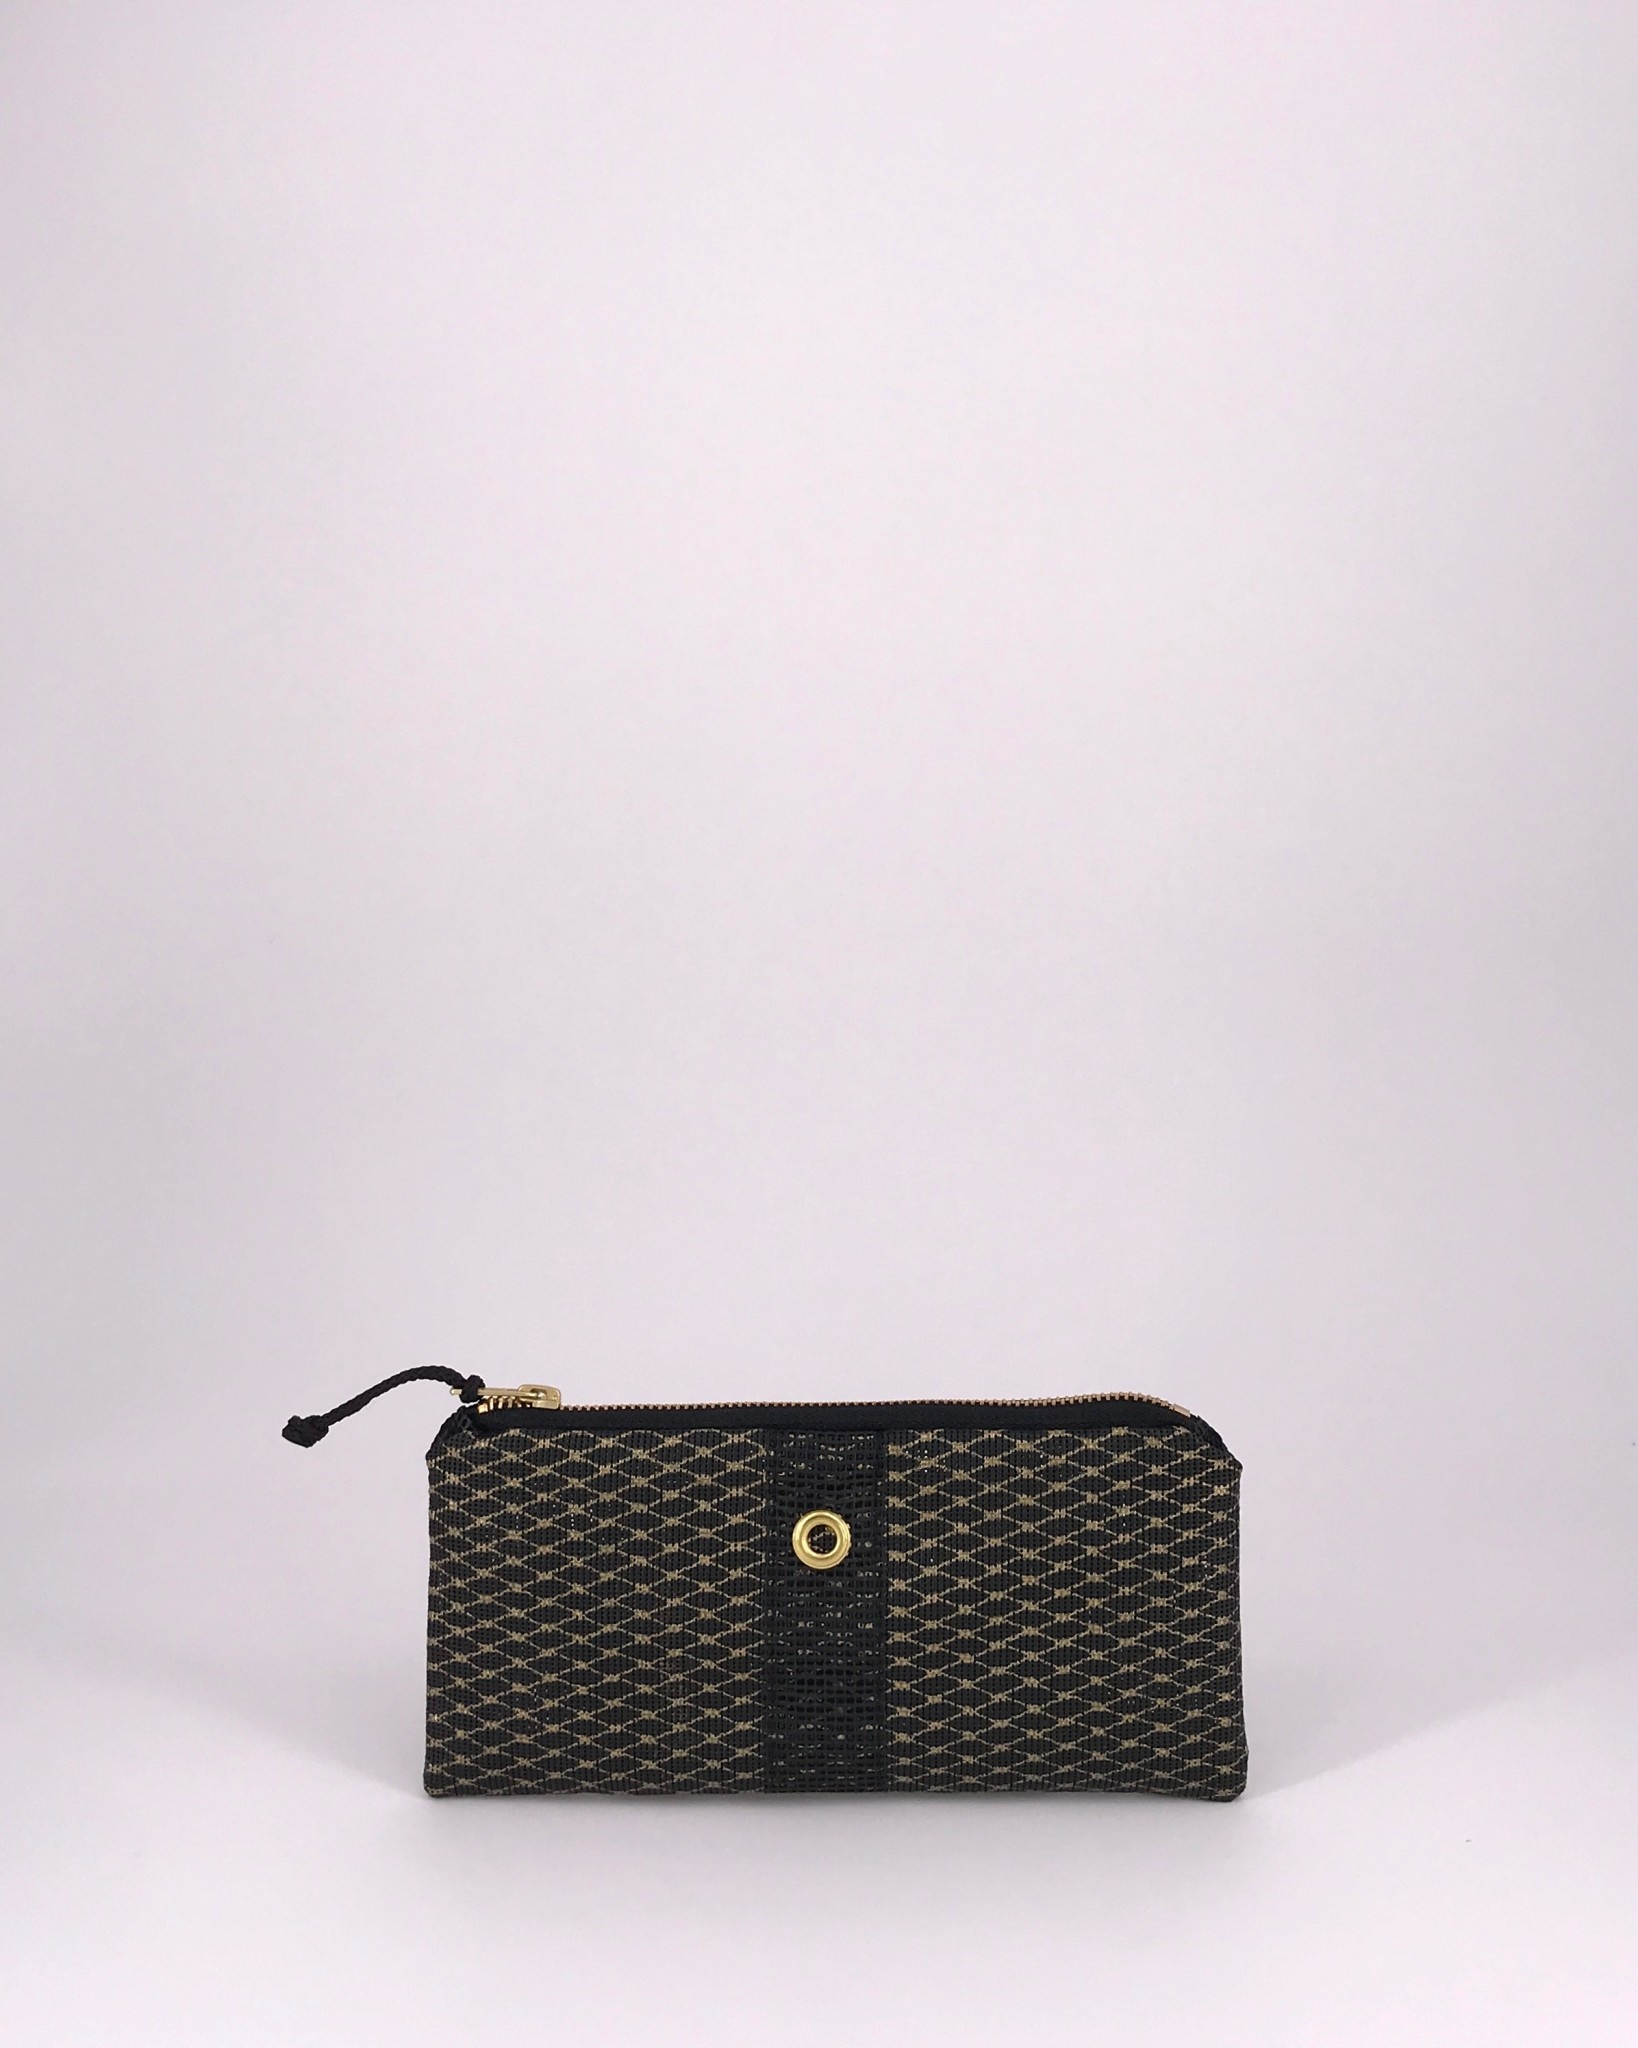 Alaina Marie ® Mini Gold Metallic on Black & Black Mini Clutch